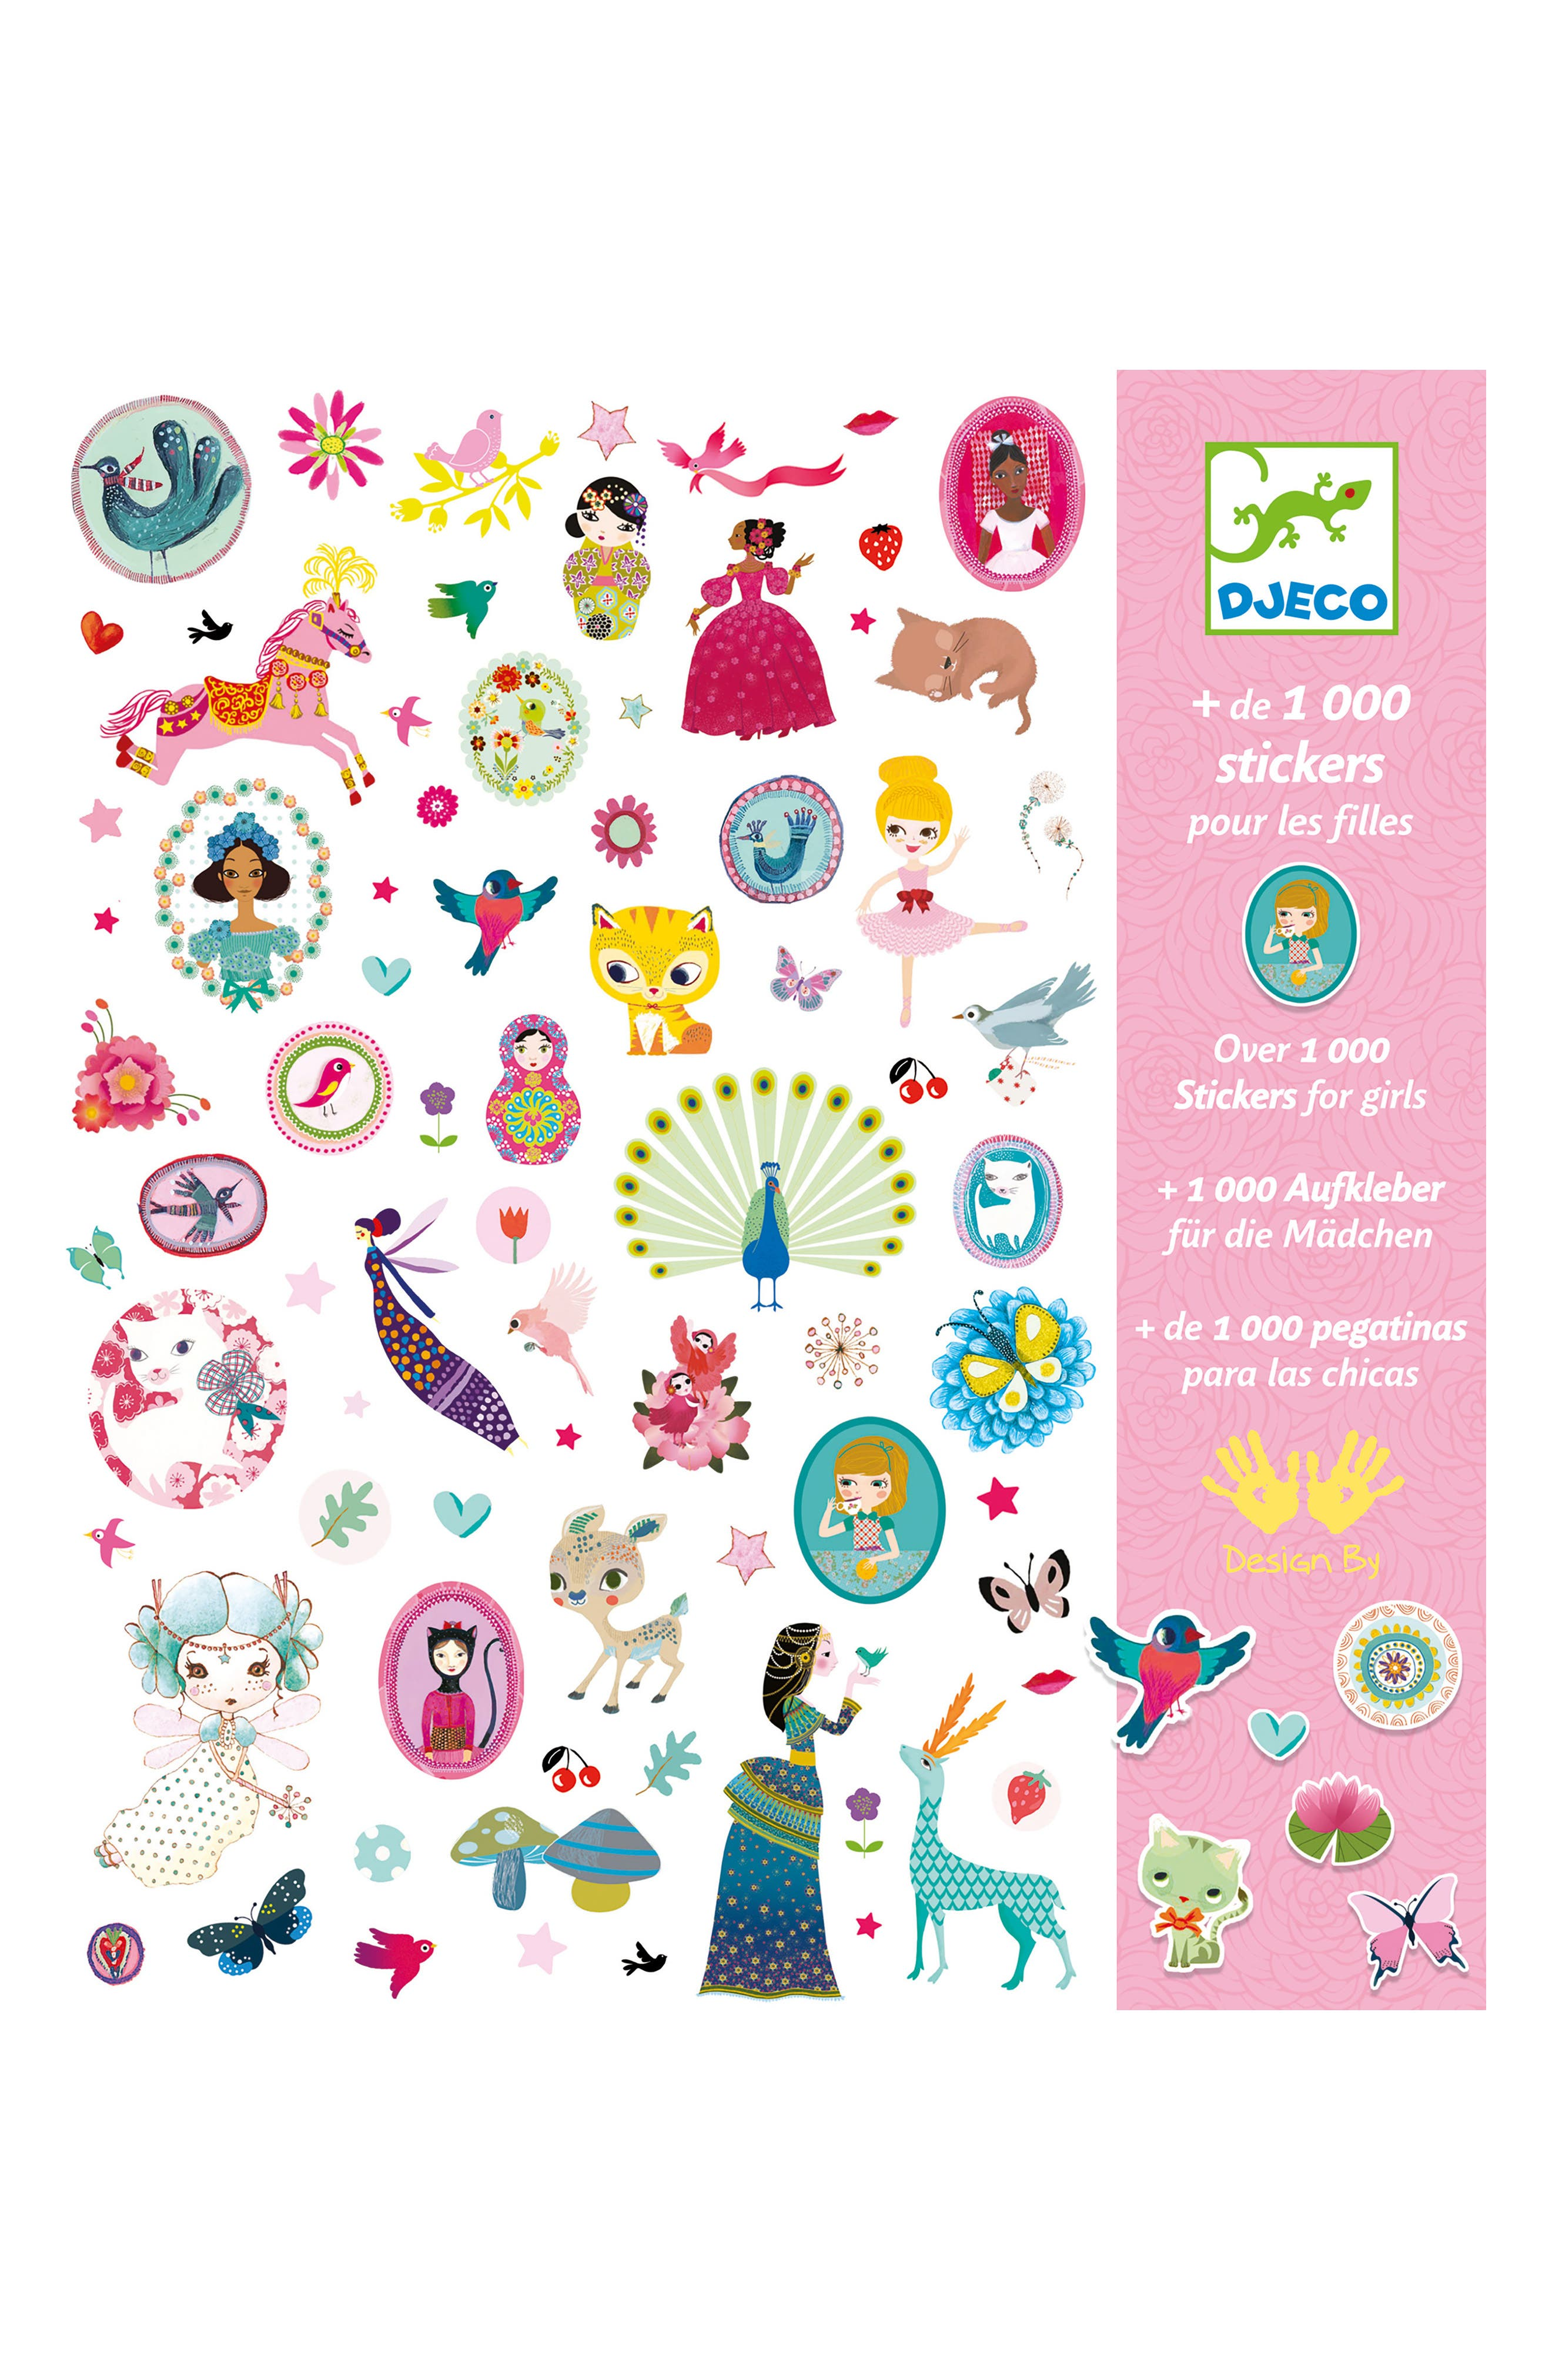 Over 1,000 Stickers for Girls Sticker Collection,                             Main thumbnail 1, color,                             100